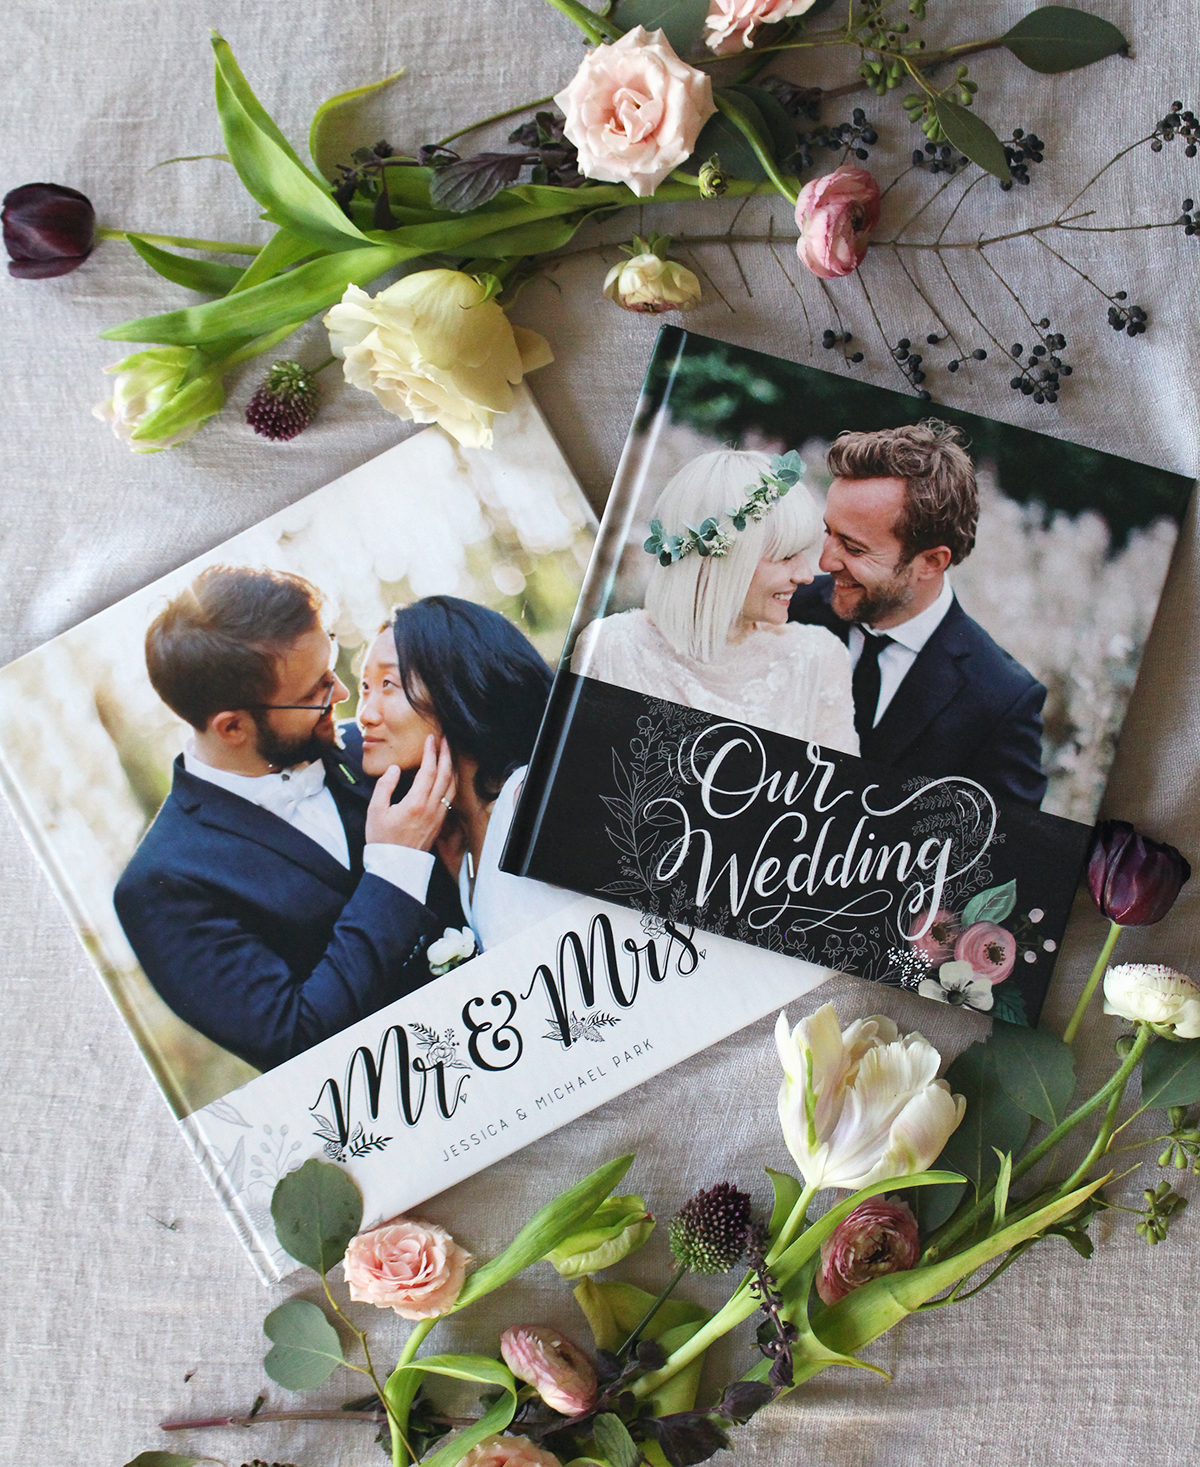 Lily & Val Designed Custom Wedding Photo Books are offered Through Mixbook